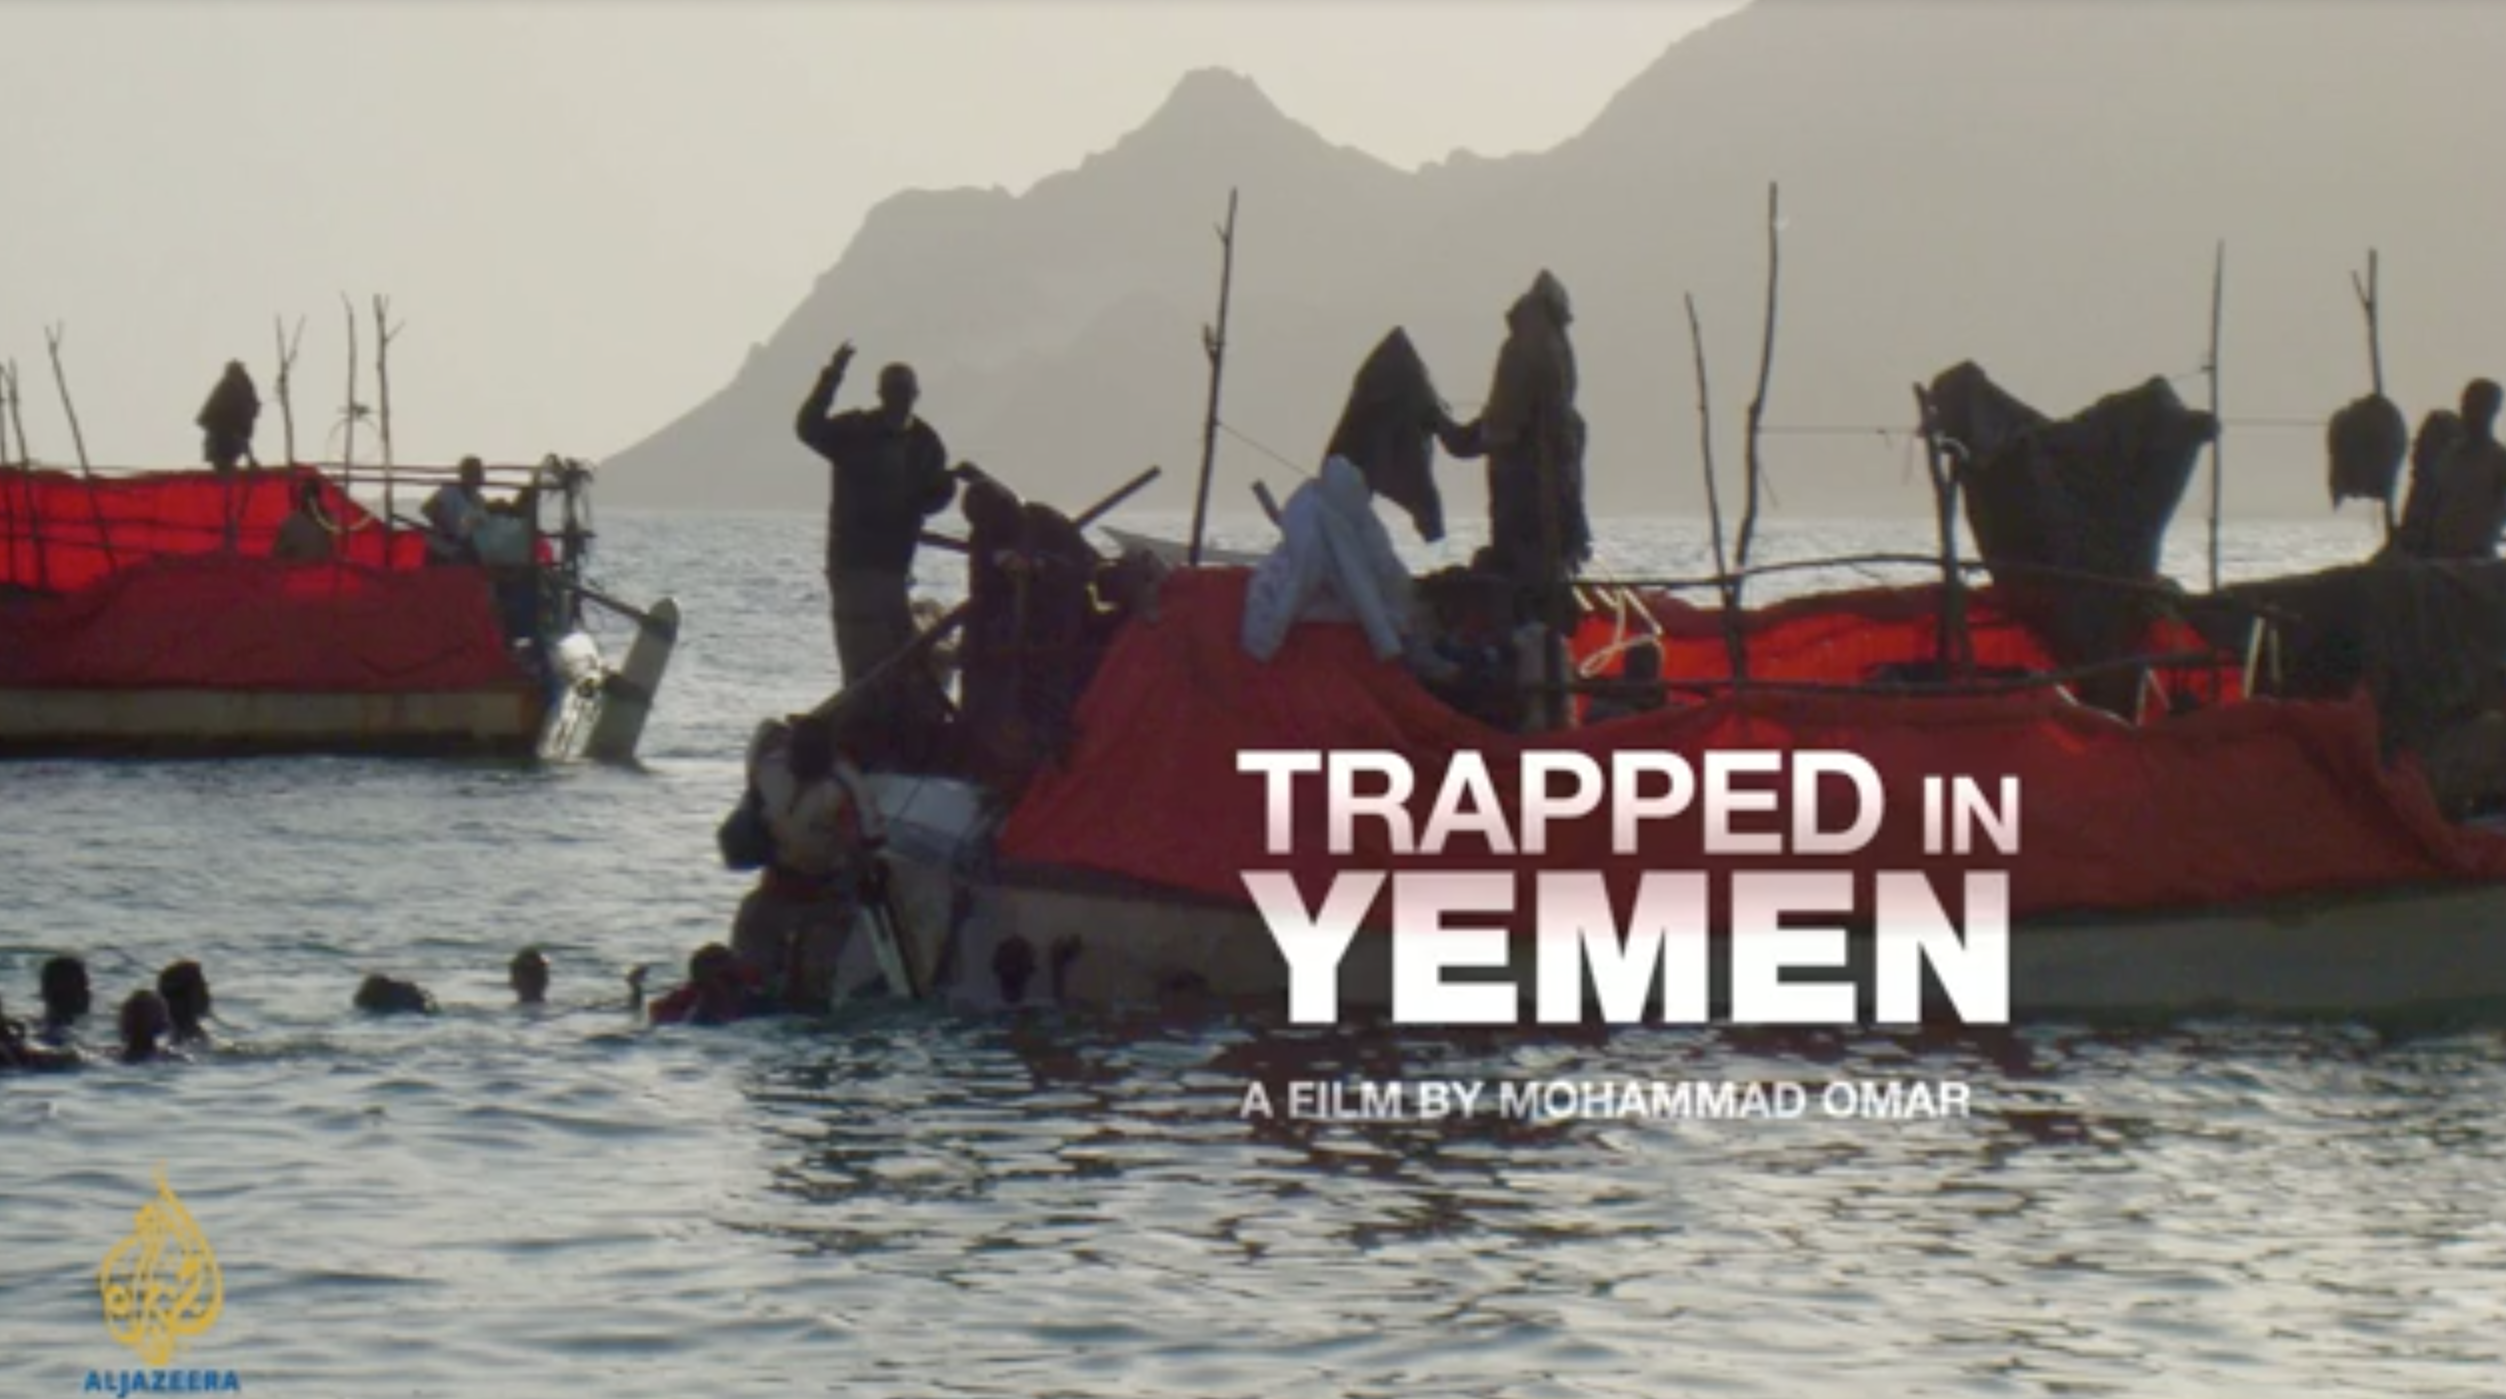 Trapped in Yemen; Mohamed Omar